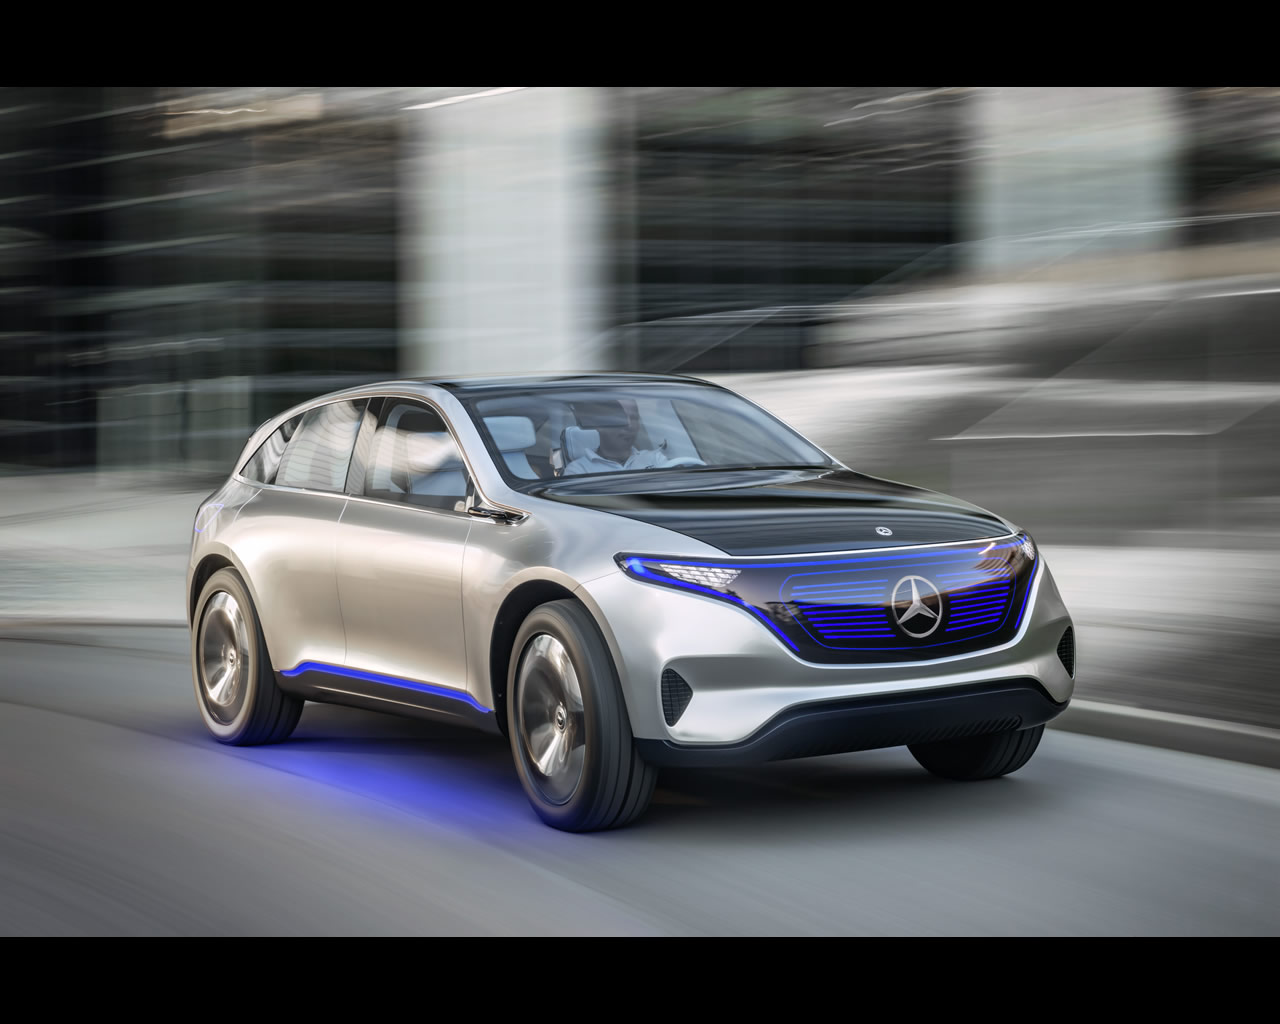 Mercedes benz eq pure electric suv coup concept 2016 for Mercedes benz coupe suv